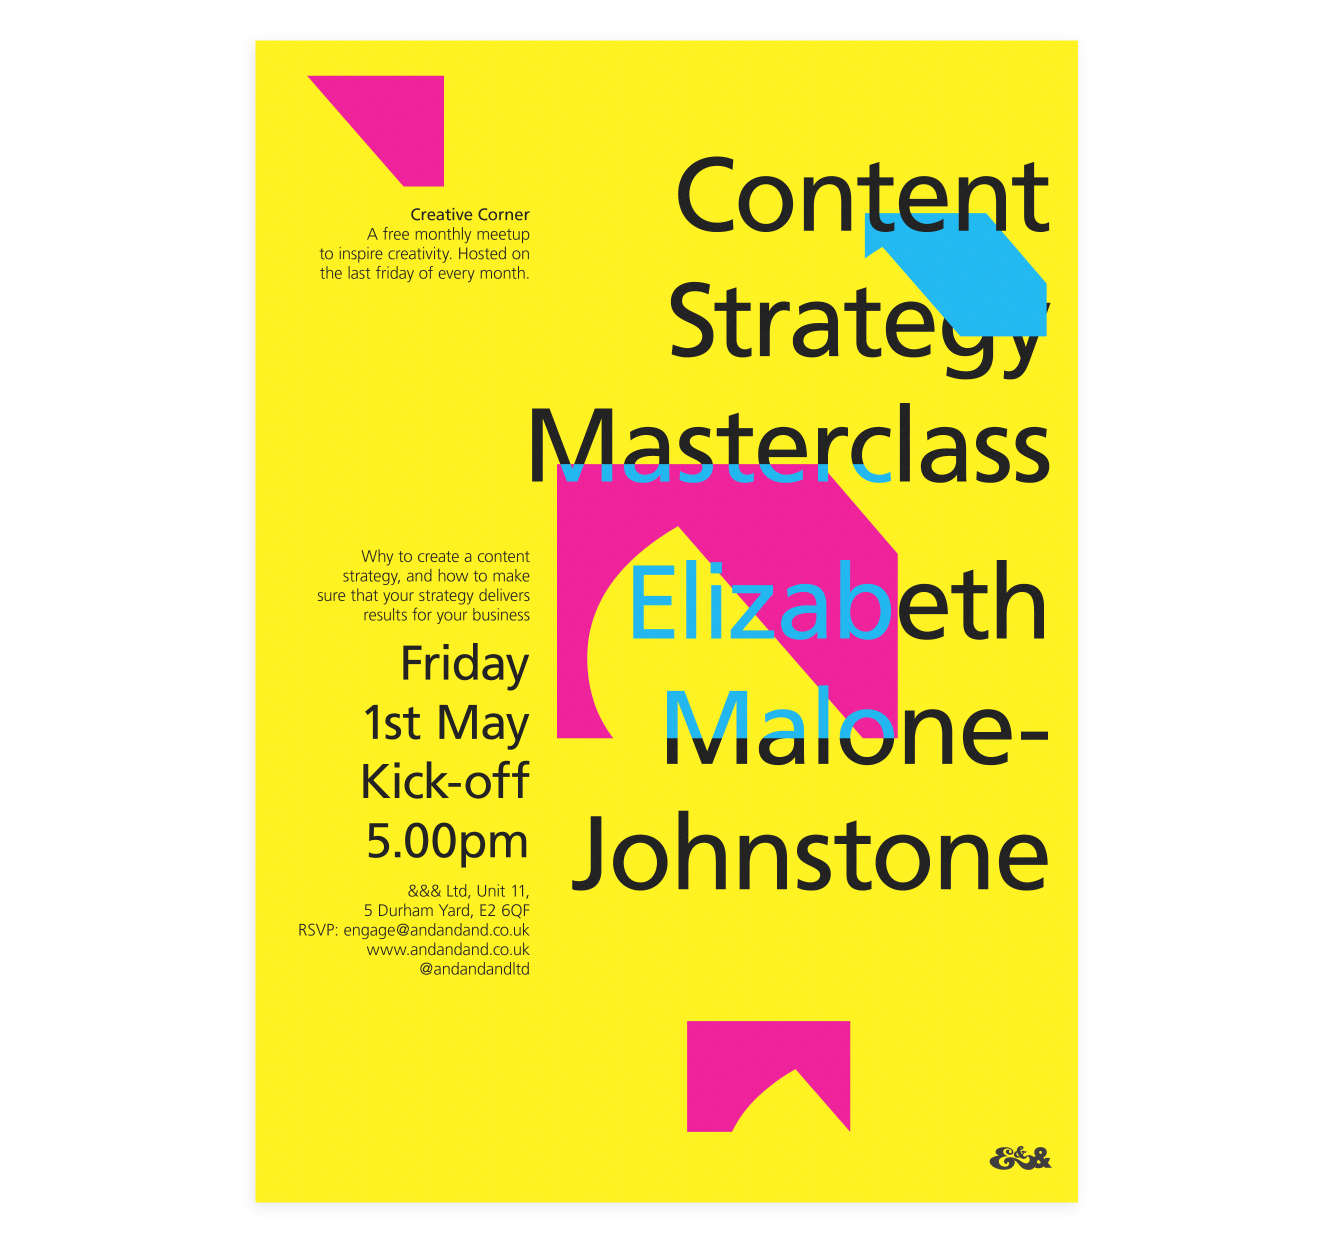 Creative Corner Poster   Content Strategy Masterclass